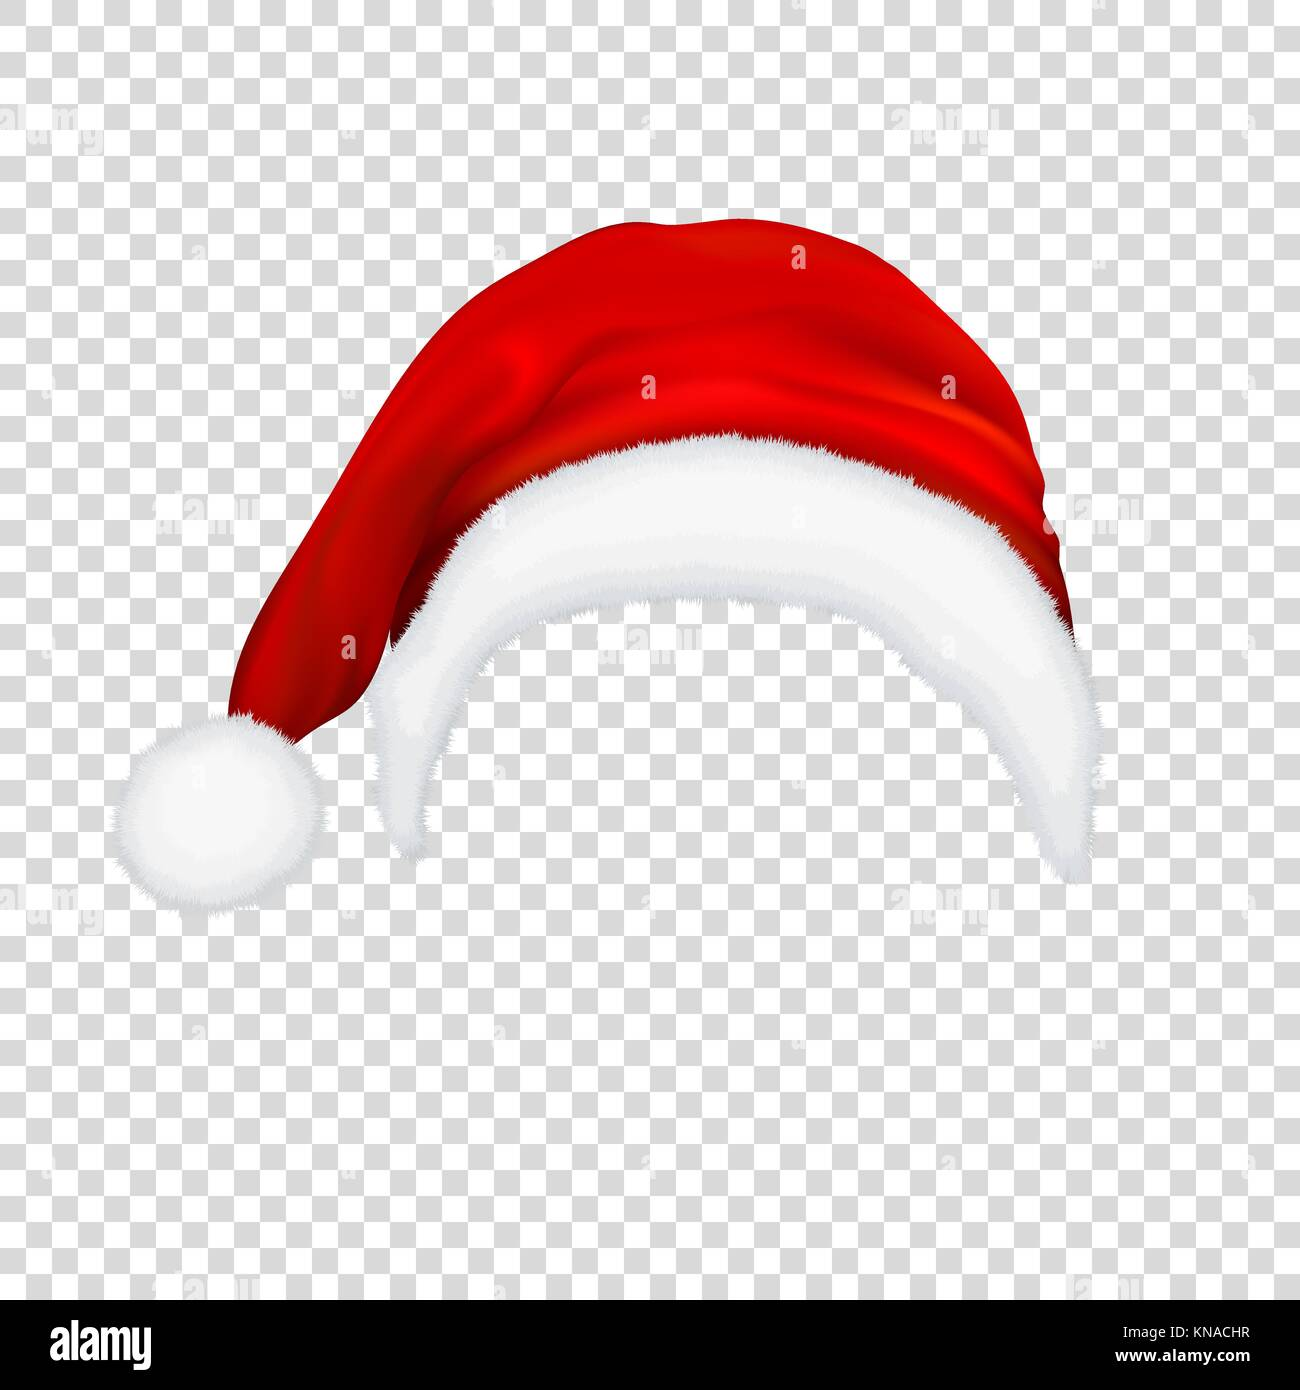 Christmas Hat Transparent.Realistic Vector Red Santa Claus Hat Icon Isolated On